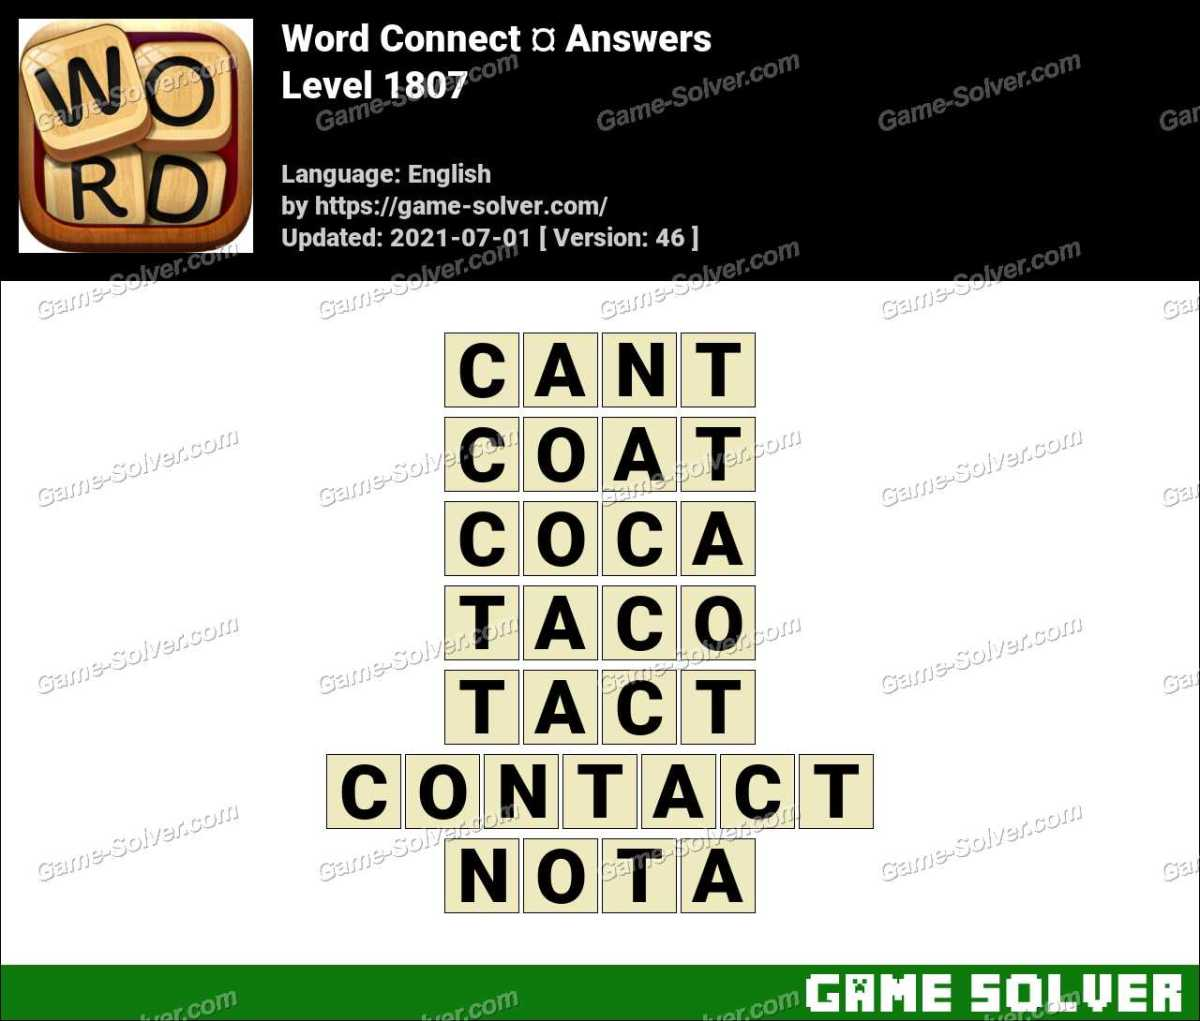 Word Connect Level 1807 Answers